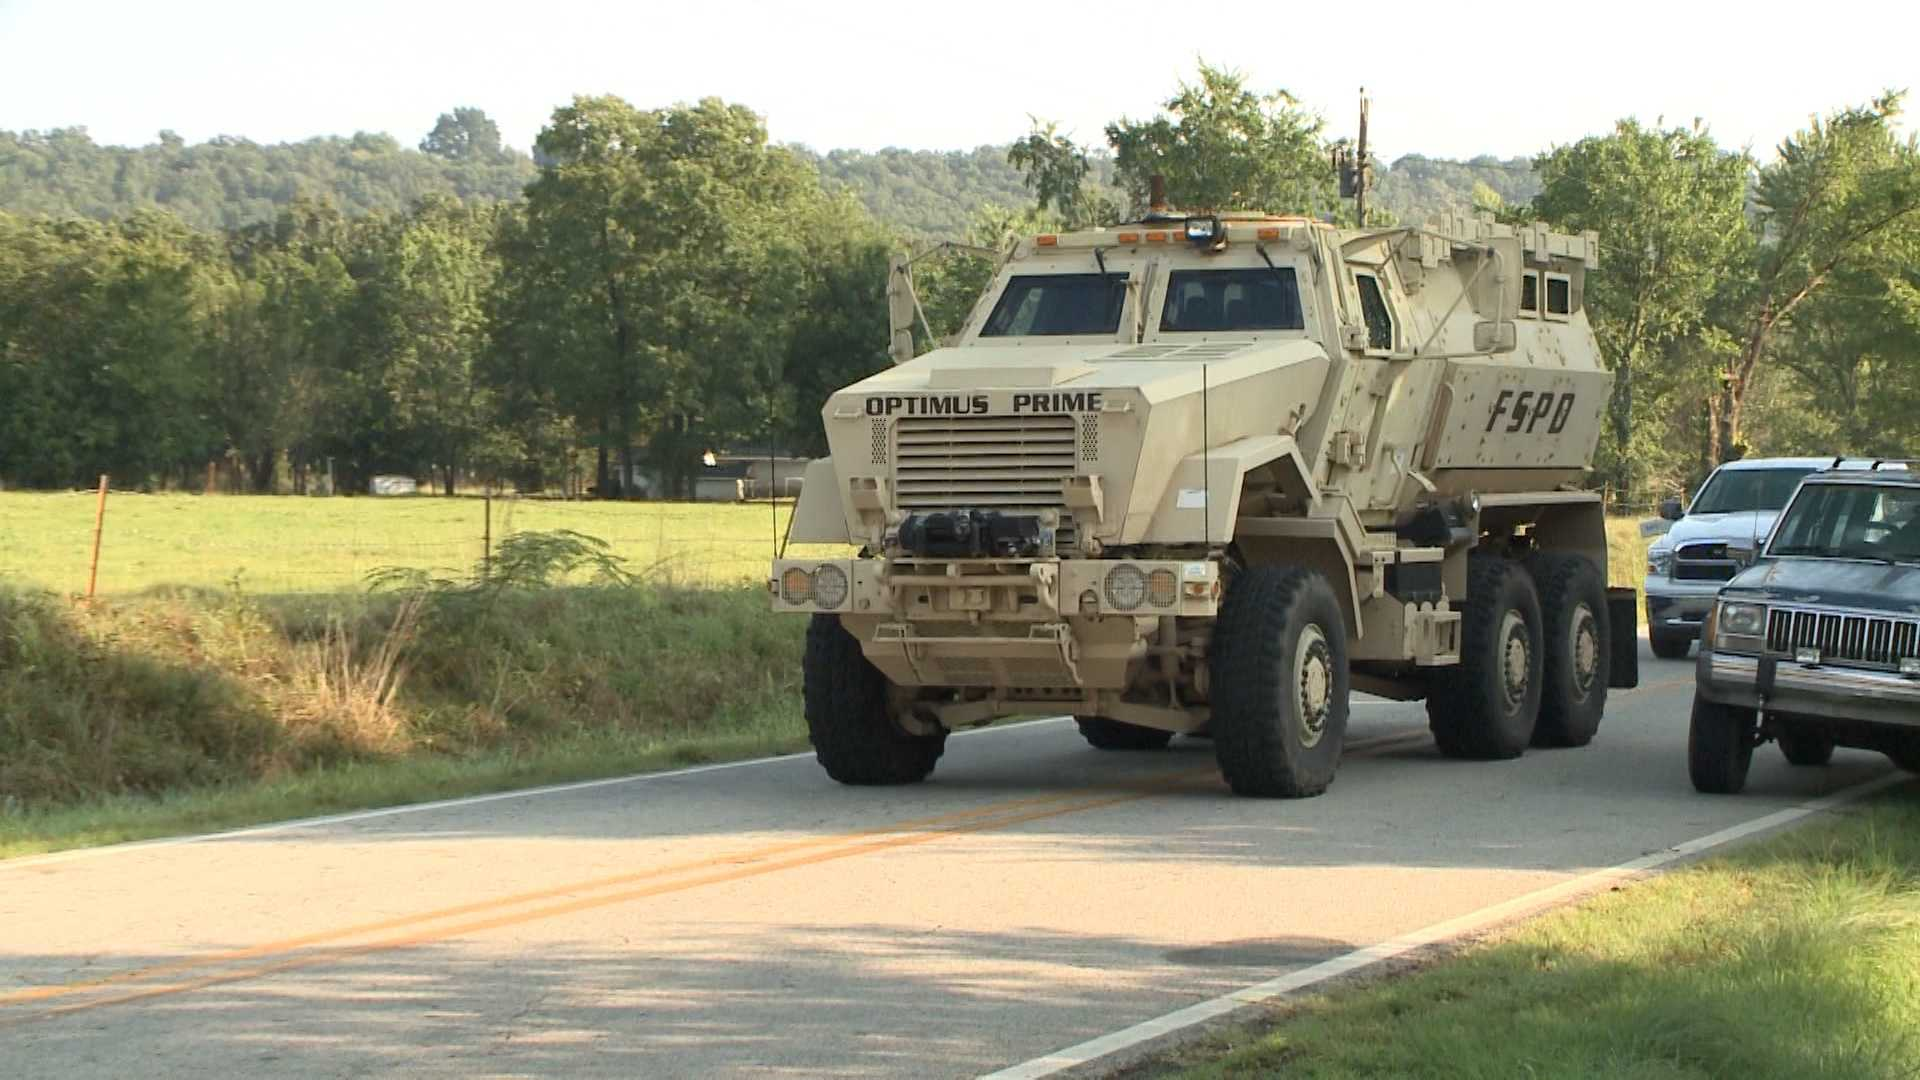 Police are crediting their armored vehicle with saving lives when SWAT team members used the vehicle last week in the deadly shootout that claimed the life of Deputy Bill Cooper.